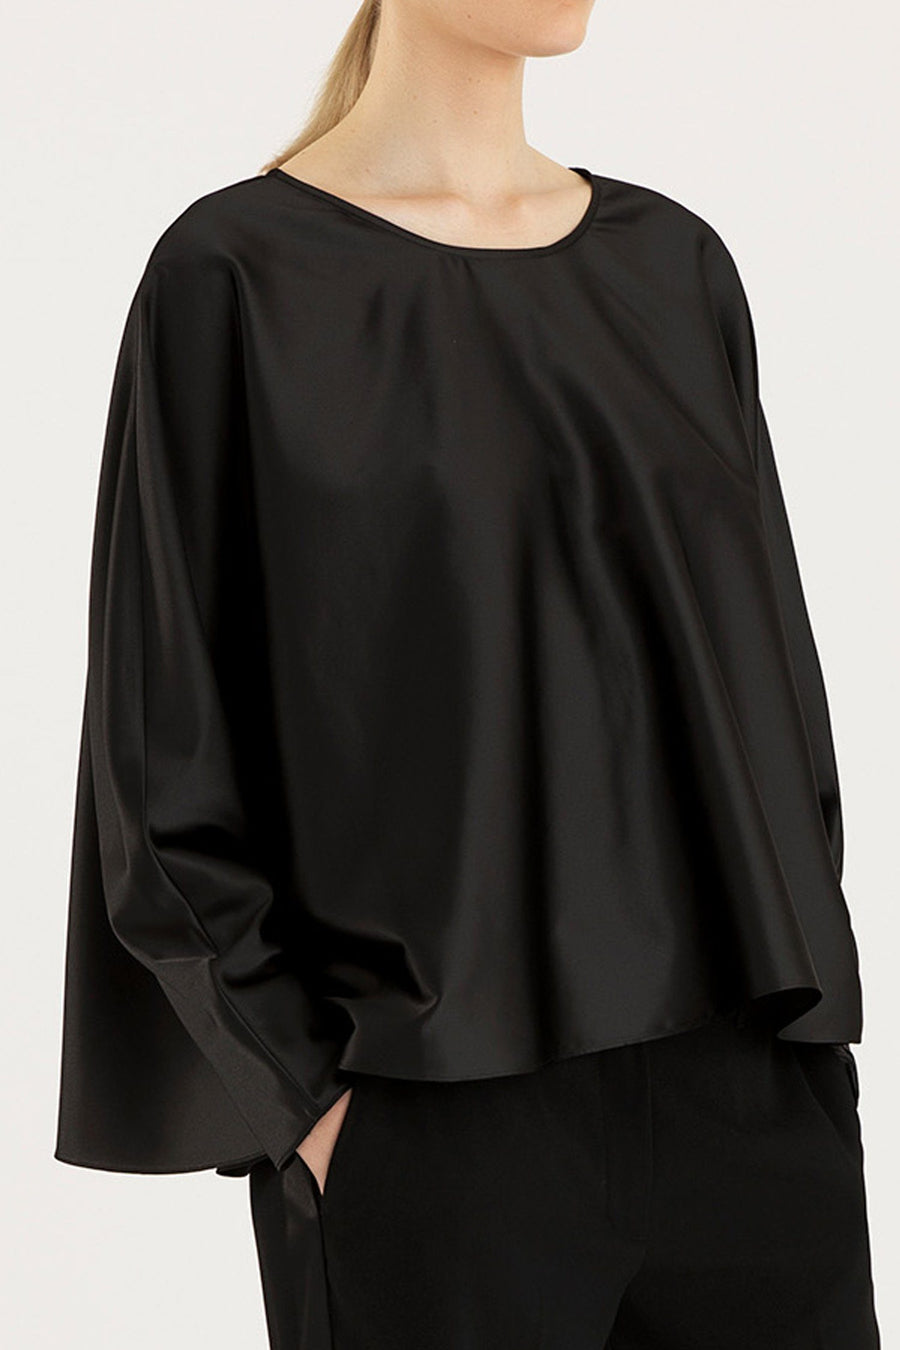 PACE TOP - BLACK